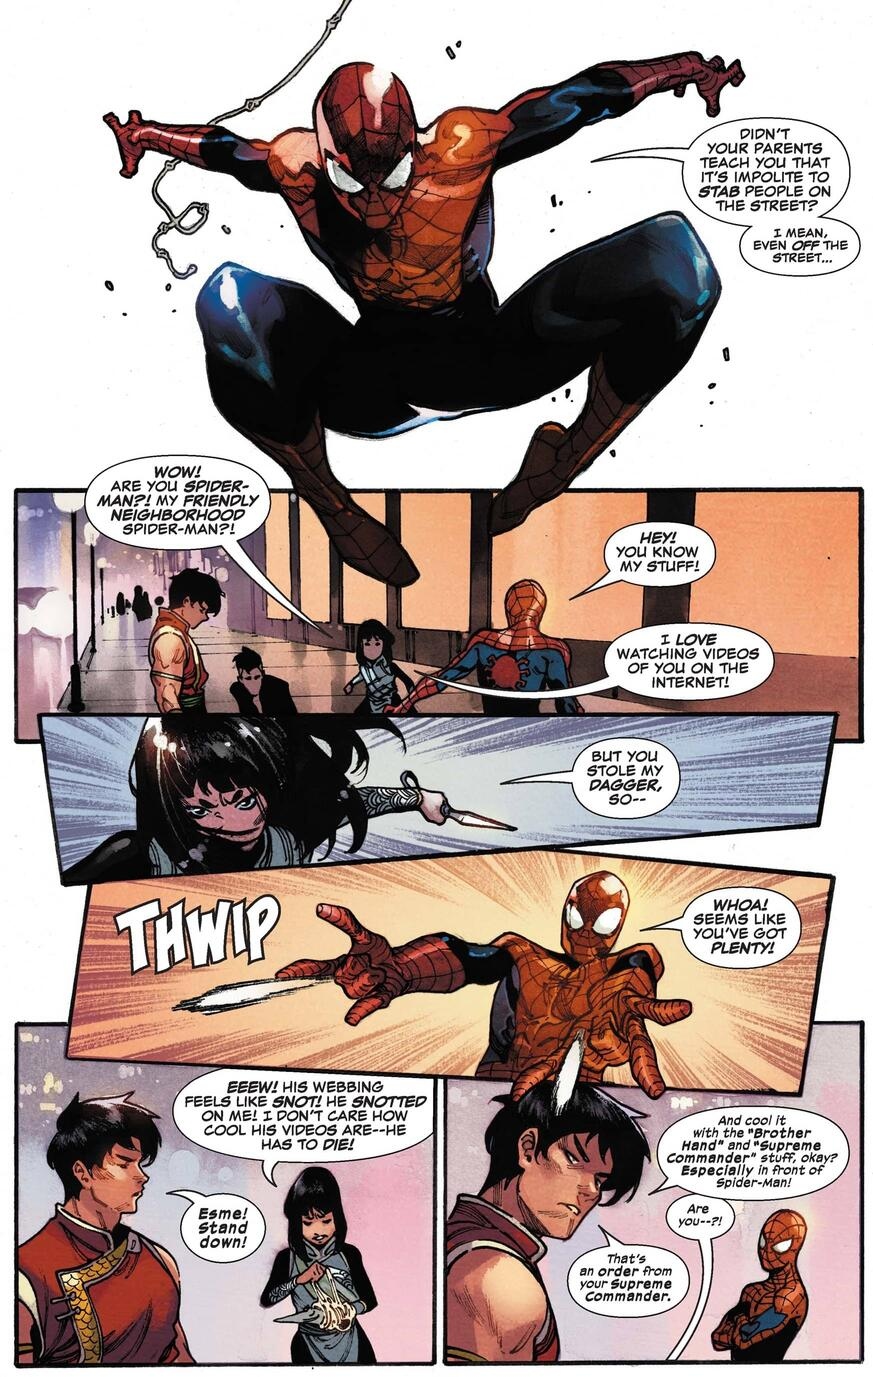 Spider-Man and Deadly Dagger confront each other.